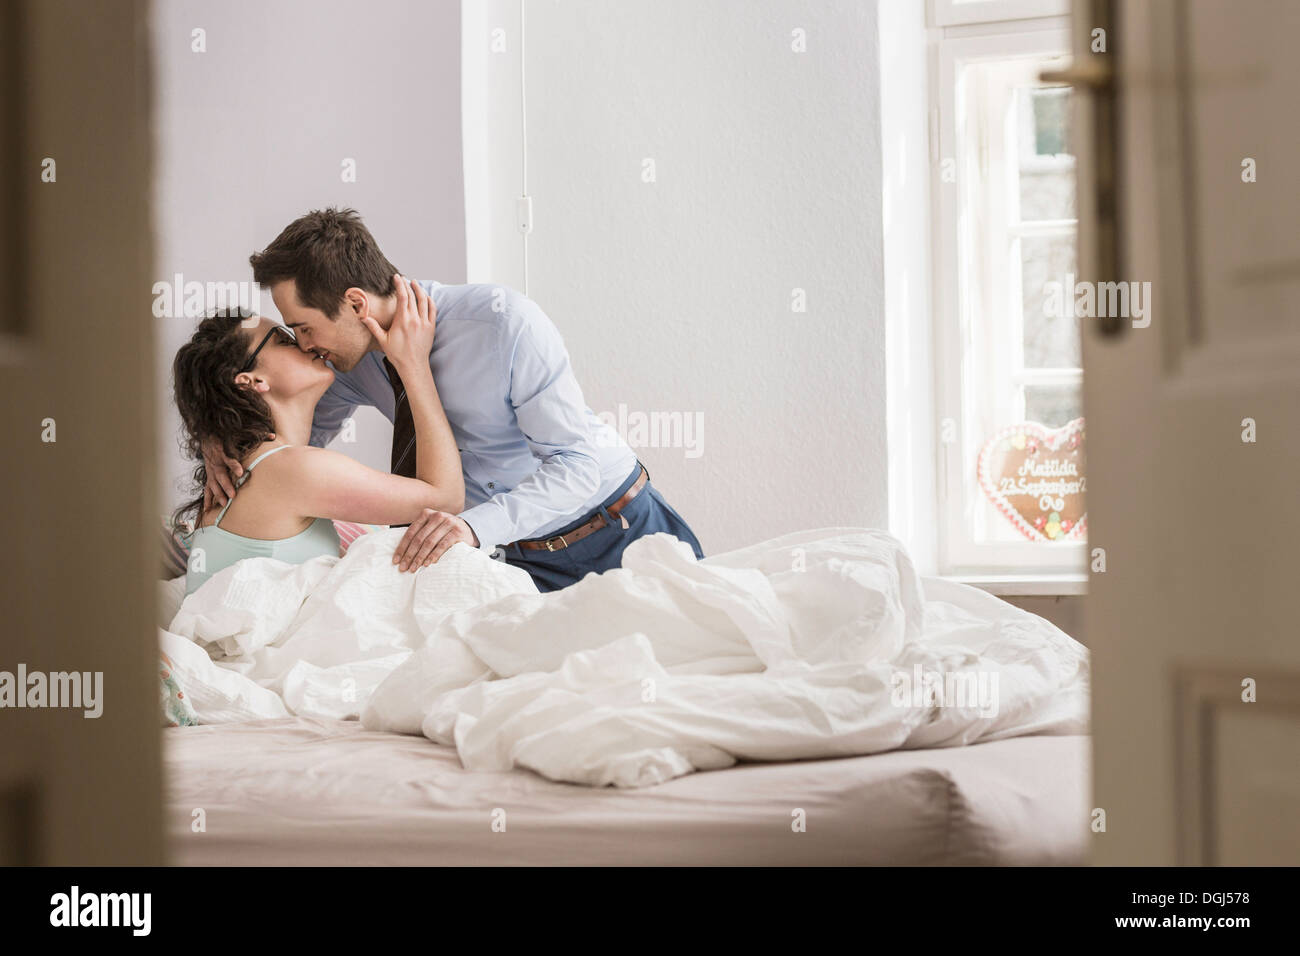 Mid adult couple kissing on bed - Stock Image